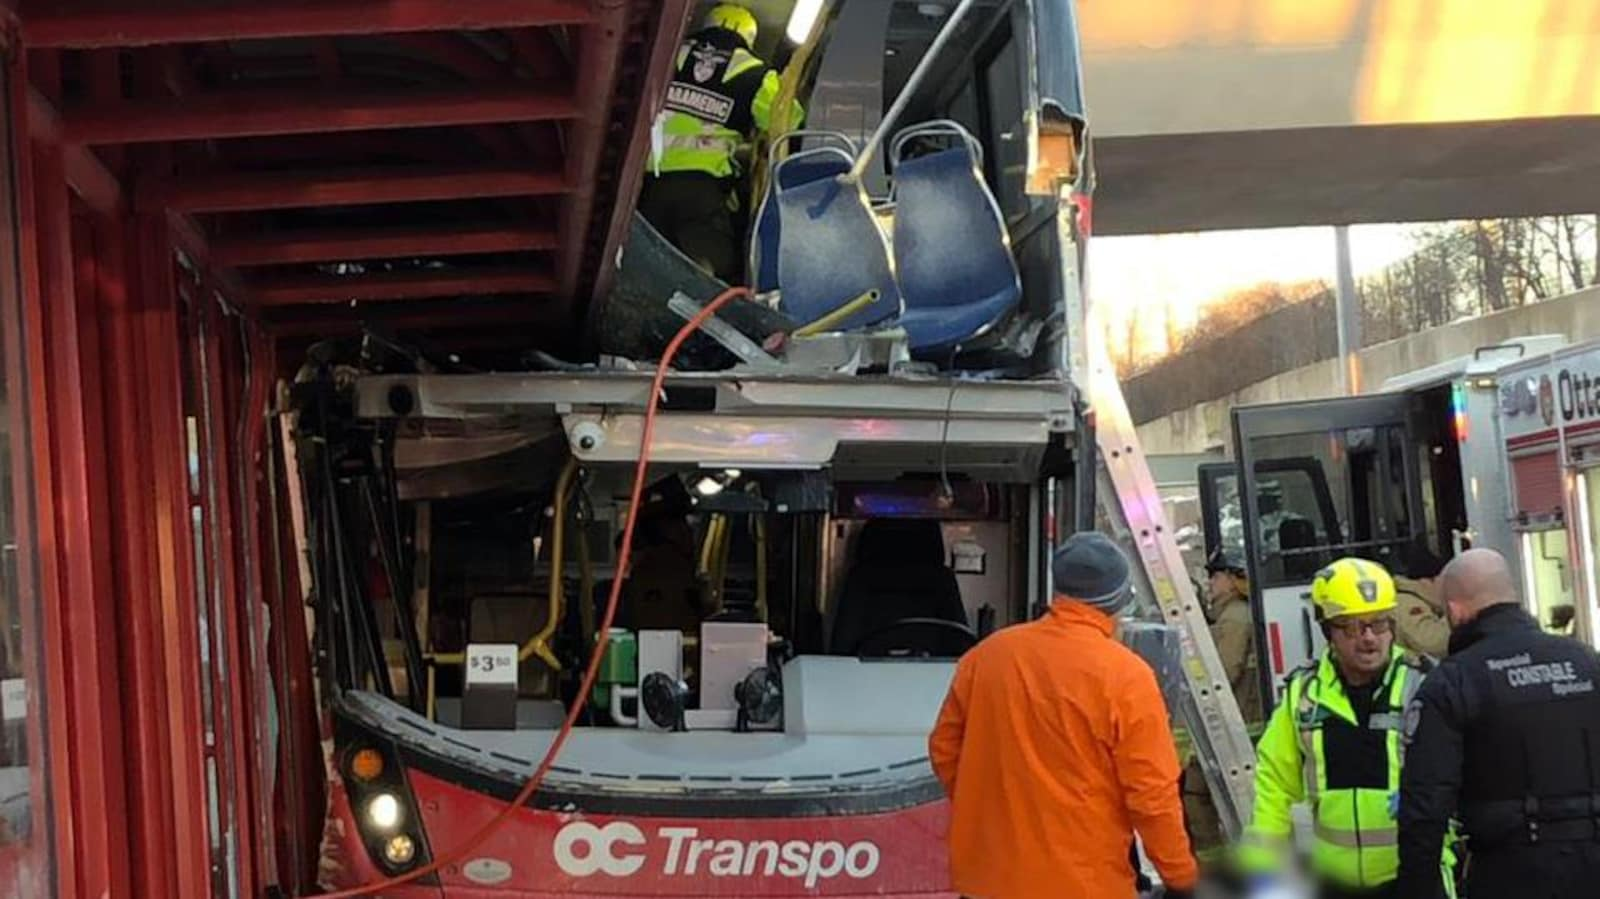 Un autobus accidenté autour duquel s'affairent des secouristes.